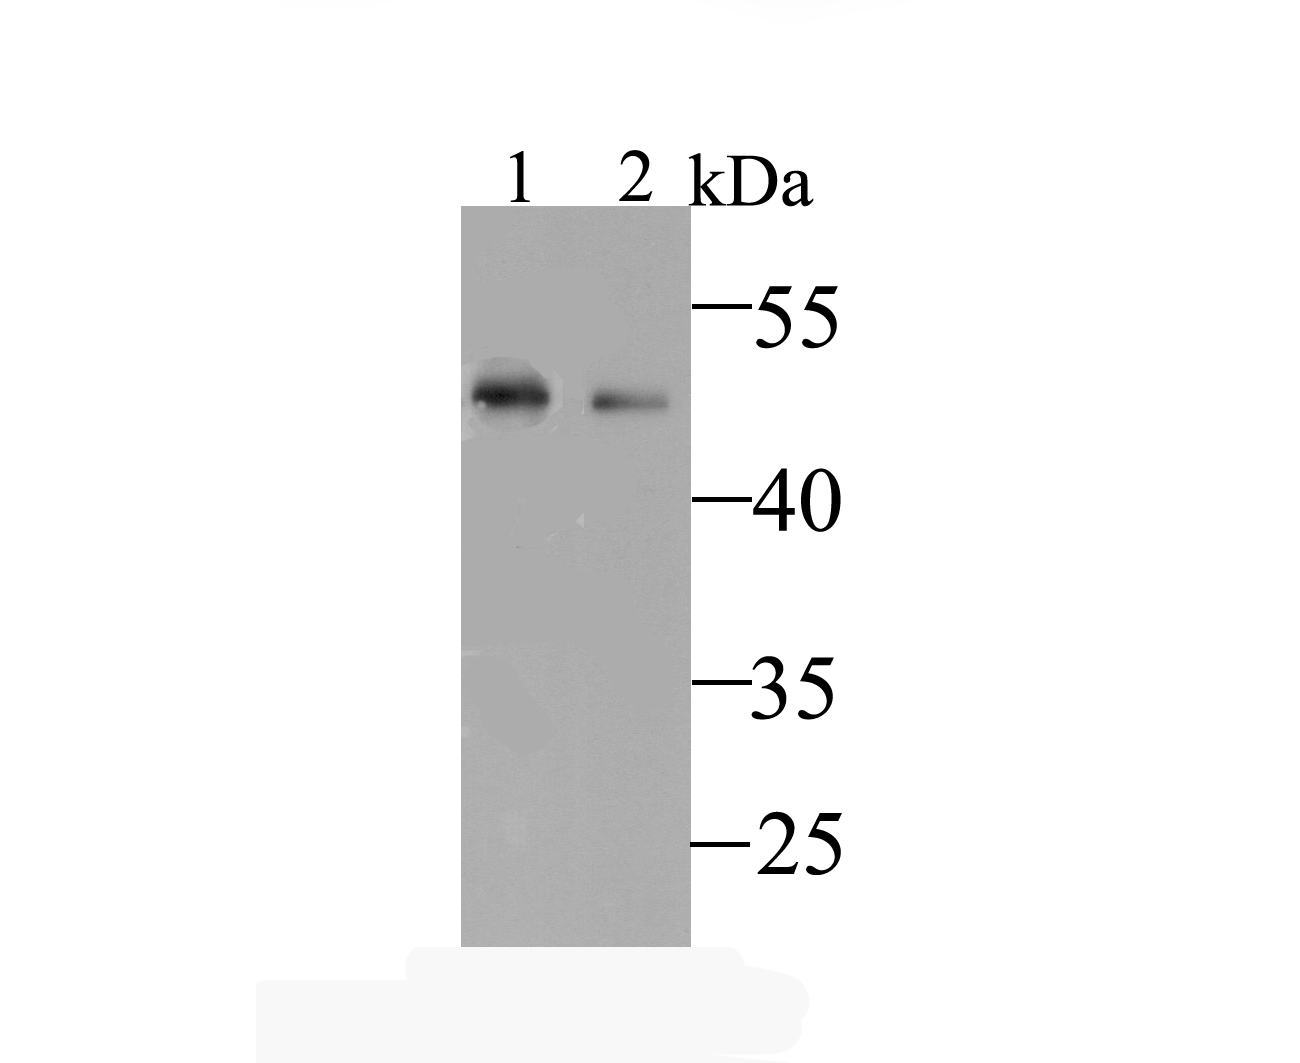 Western blot analysis of Kir6.2 on different lysates. Proteins were transferred to a PVDF membrane and blocked with 5% BSA in PBS for 1 hour at room temperature. The primary antibody was used at a 1:500 dilution in 5% BSA at room temperature for 2 hours. Goat Anti-Rabbit IgG - HRP Secondary Antibody (HA1001) at 1:5,000 dilution was used for 1 hour at room temperature.<br /> Positive control: <br /> Lane 1: Human liver tissue lysate<br /> Lane 2: Mouse liver tissue lysate